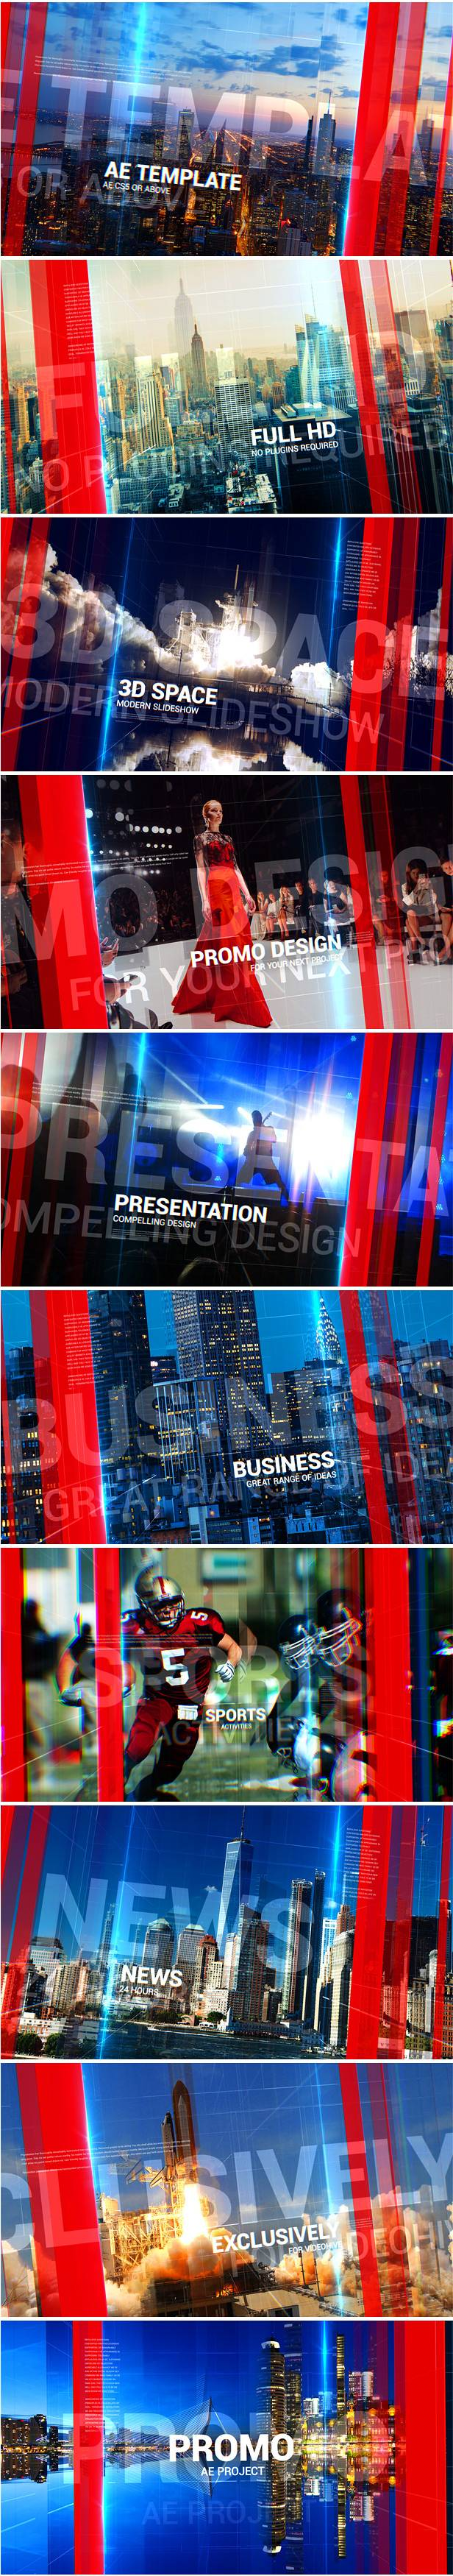 Promo Slideshow After Effects Template